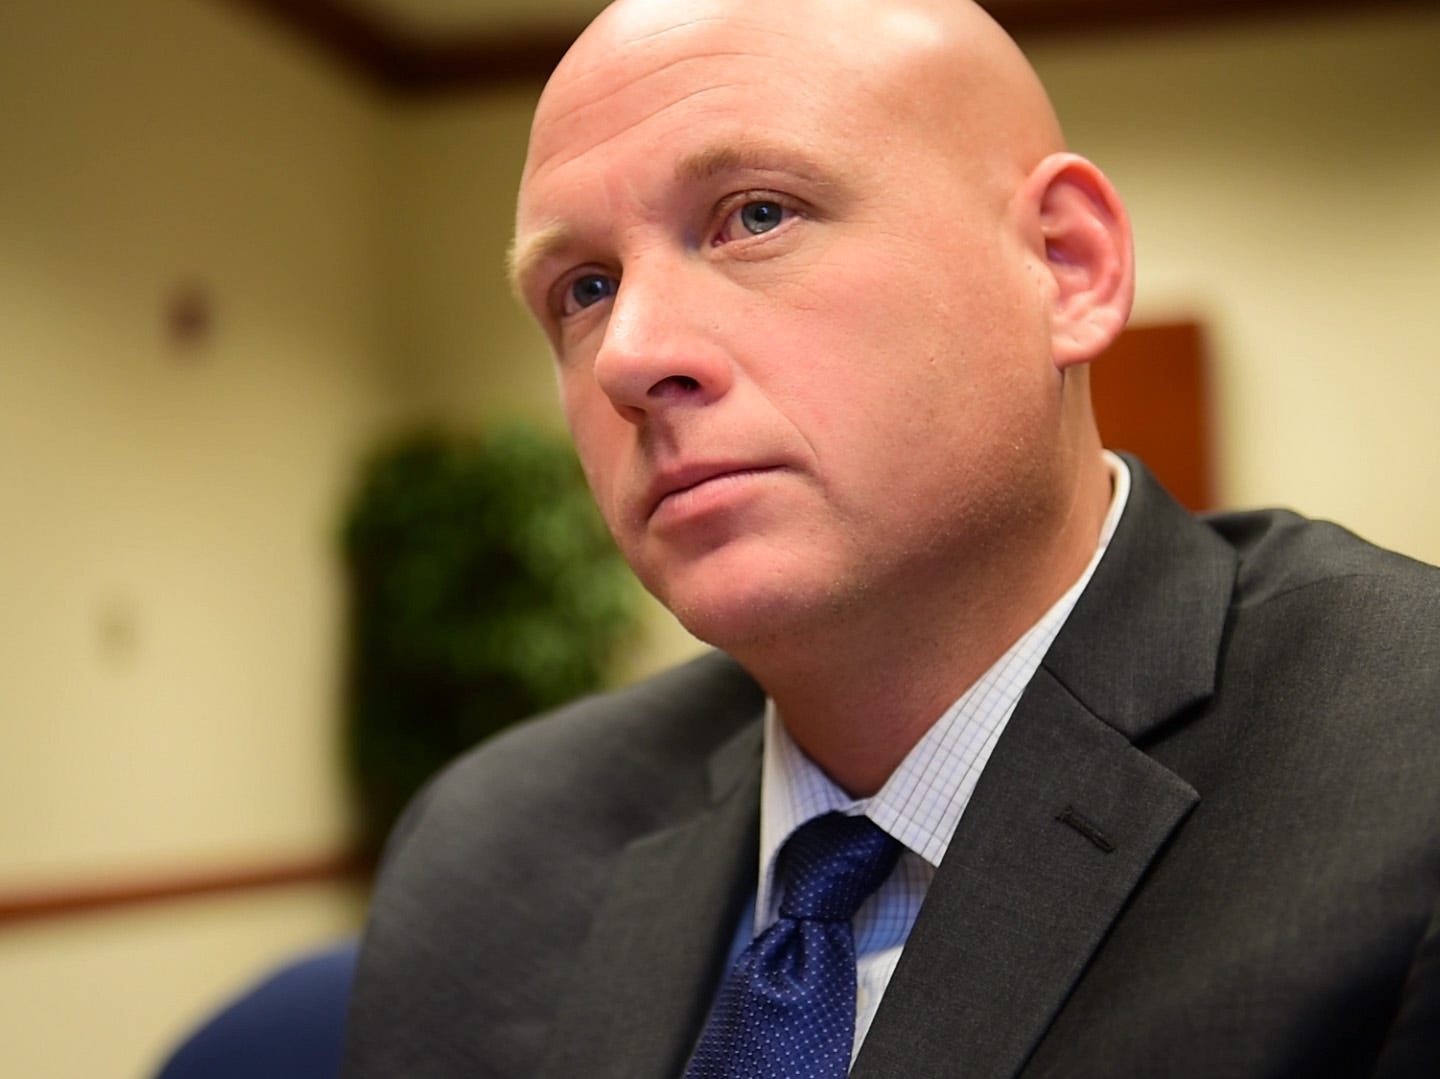 Ottawa County Prosecutor James VanEerten said drugs on the street sold as heroin are usually mixed with more potent synthetic opioids, which can result in accidental overdoses.